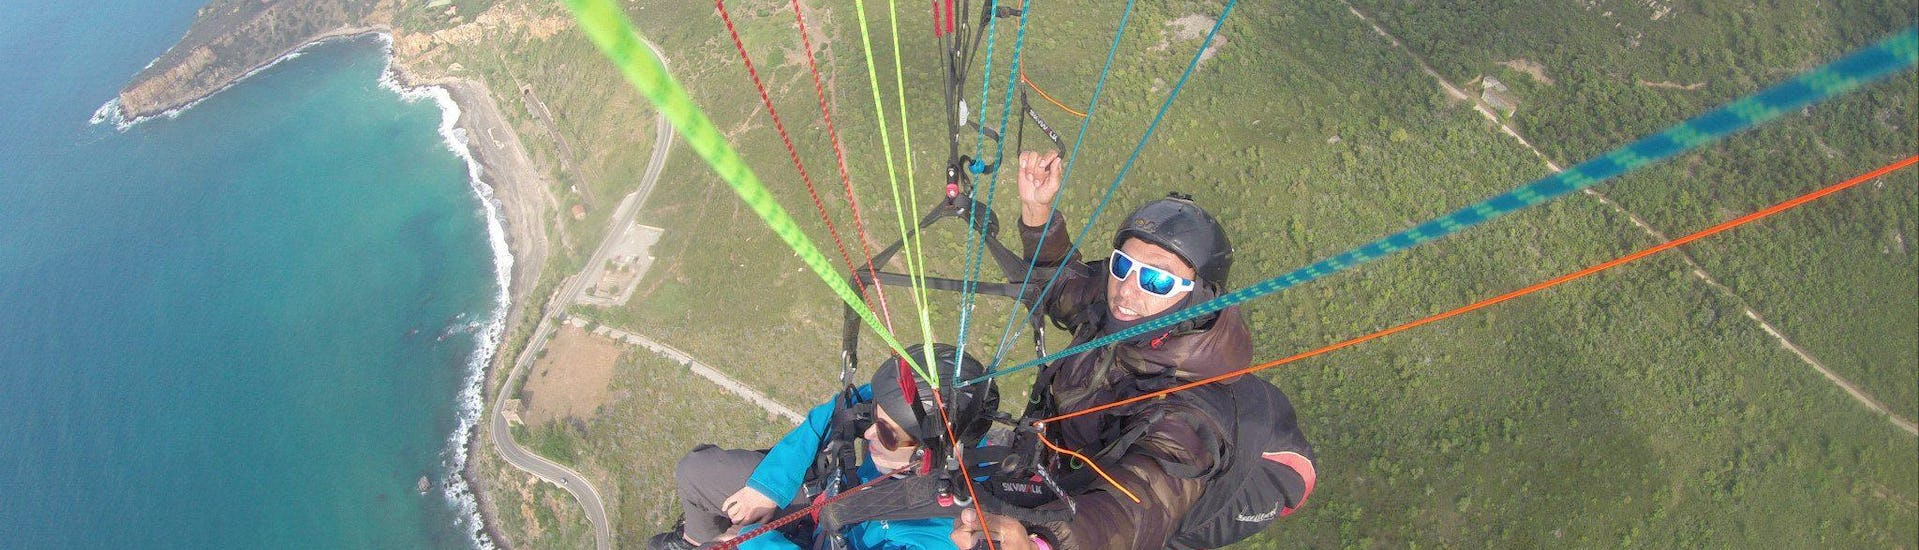 Tandem Paragliding from Taormina to Letojanni Beach